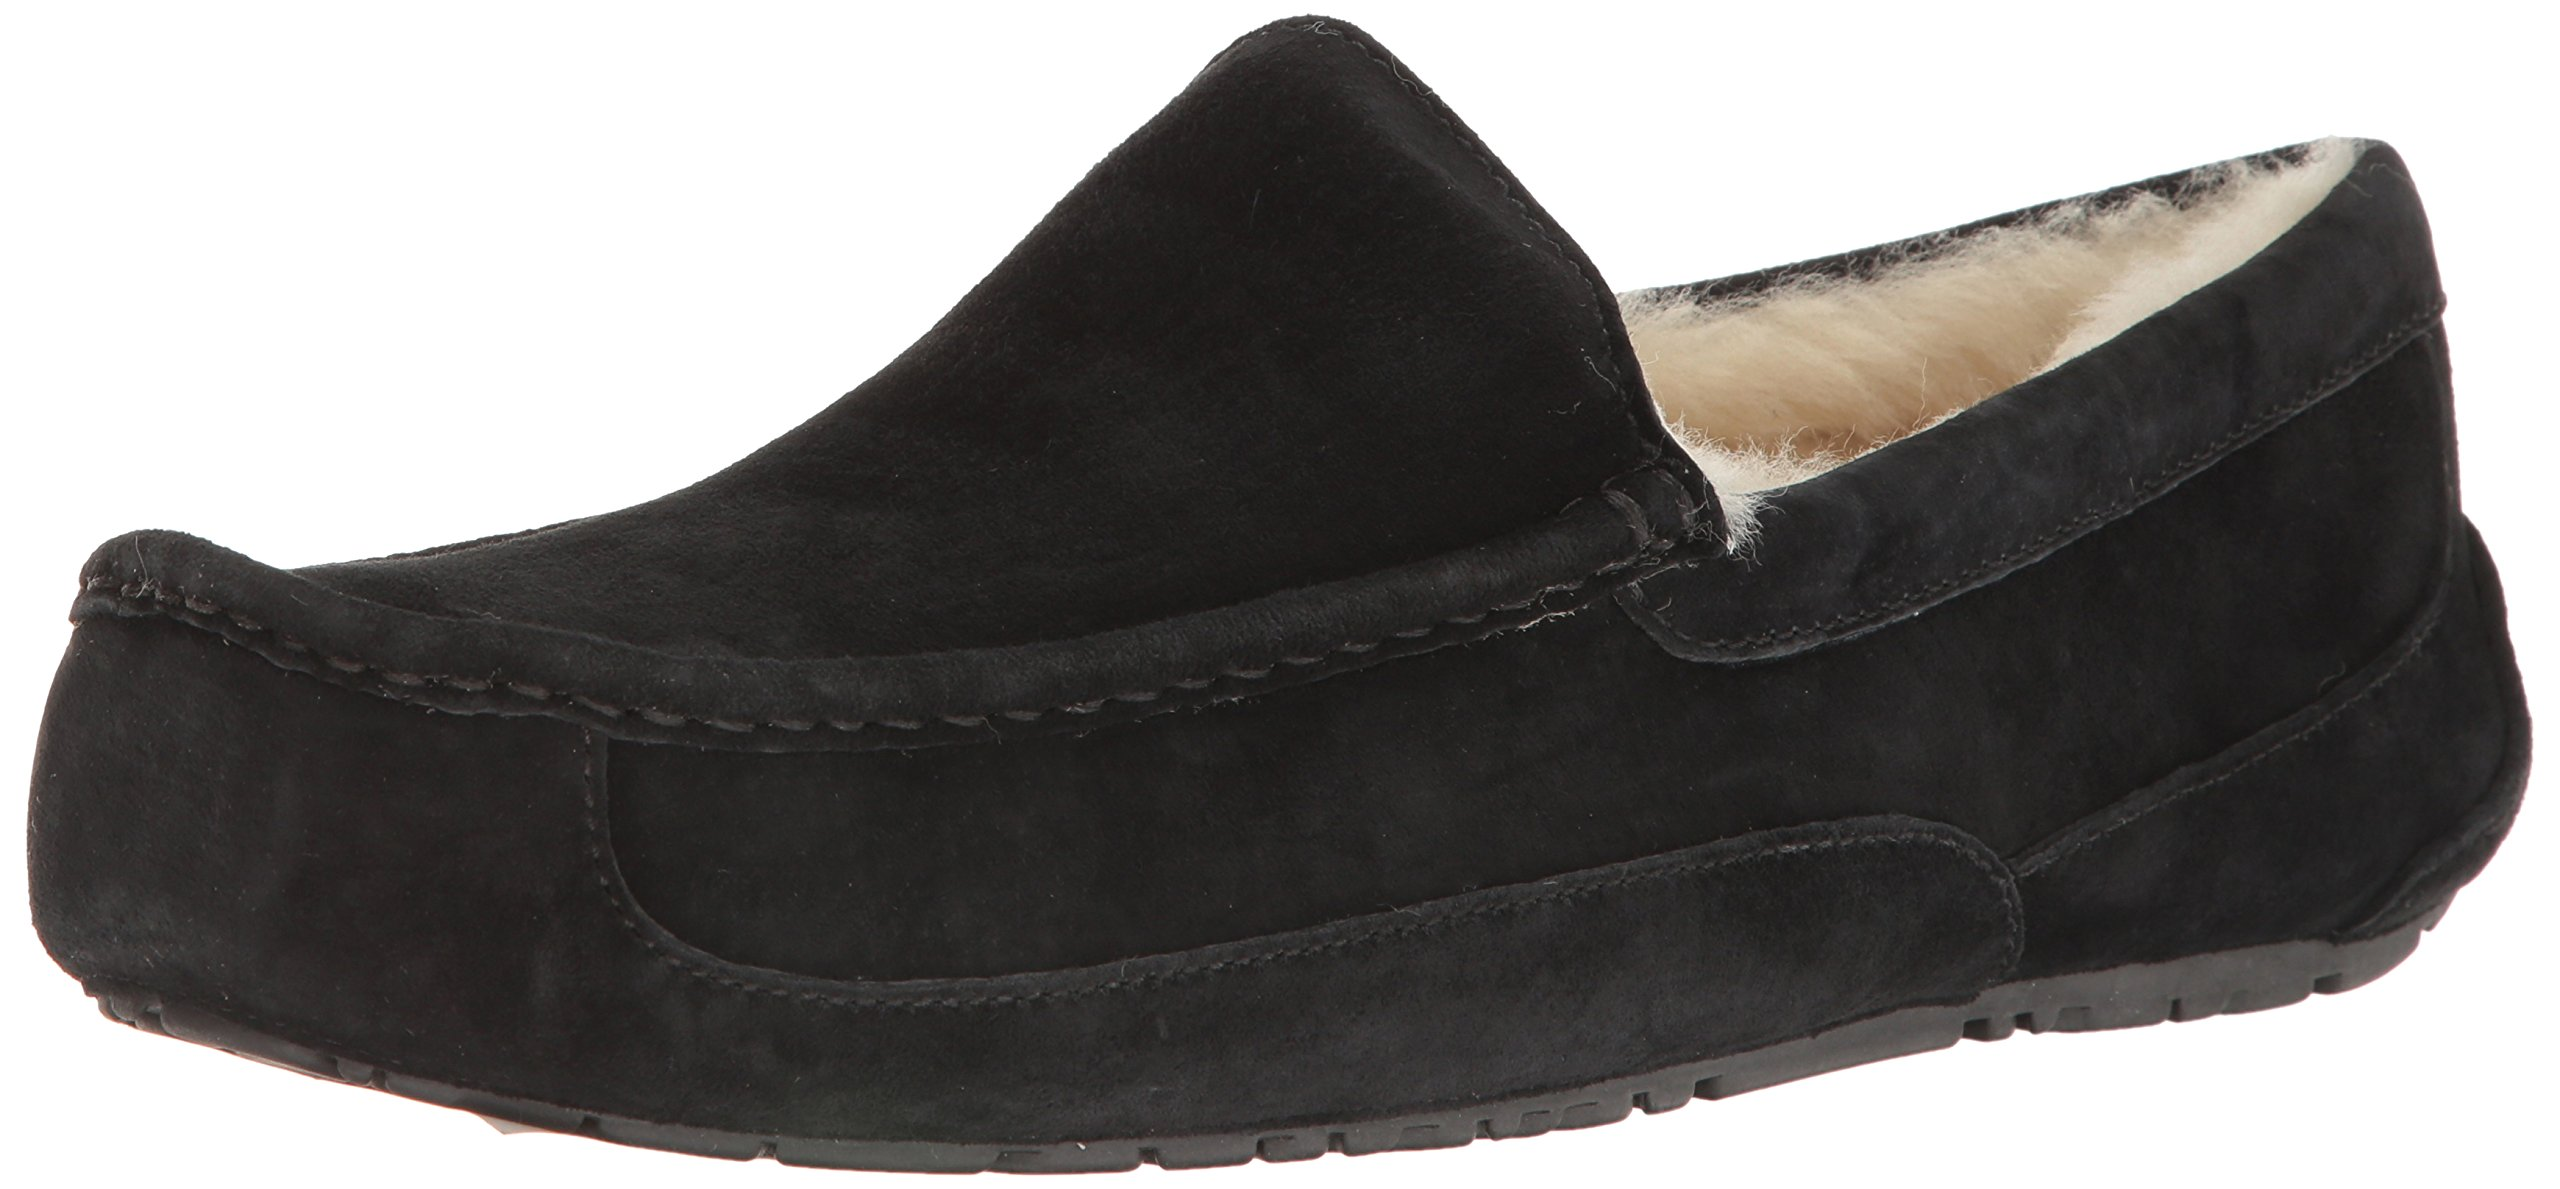 UGG Men's Ascot Slipper, Black, 16 M US